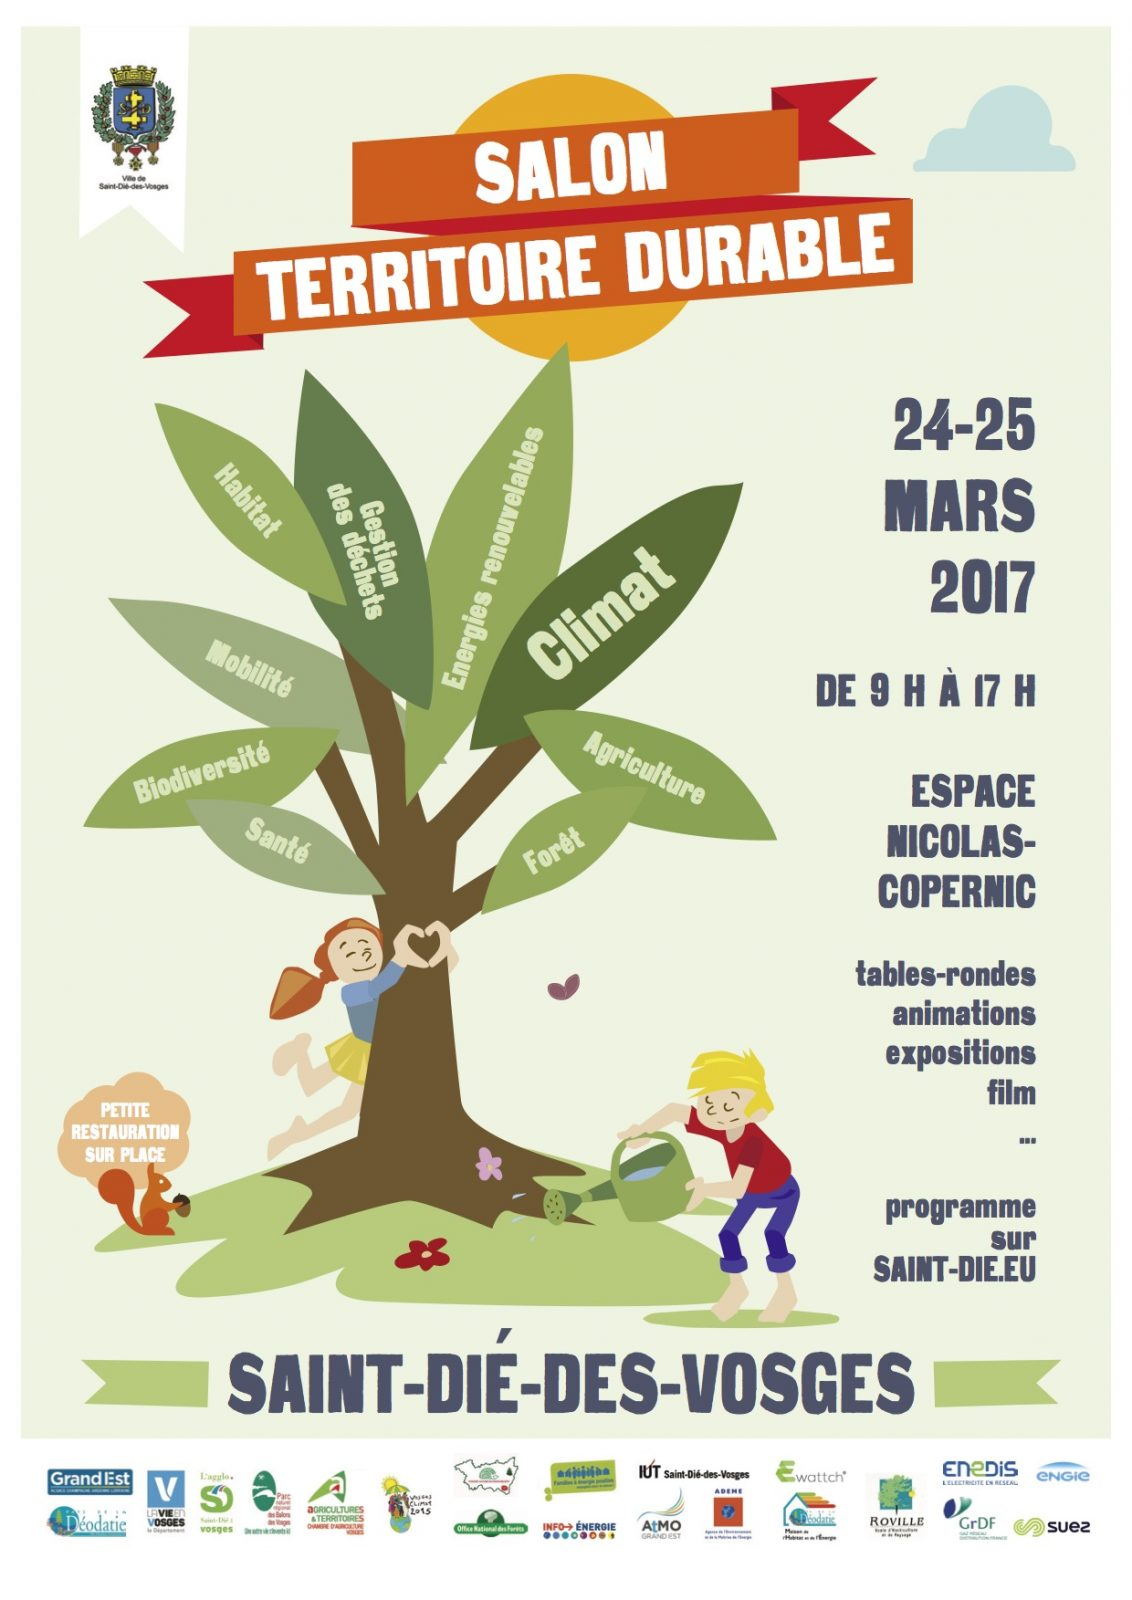 salon territoire durable